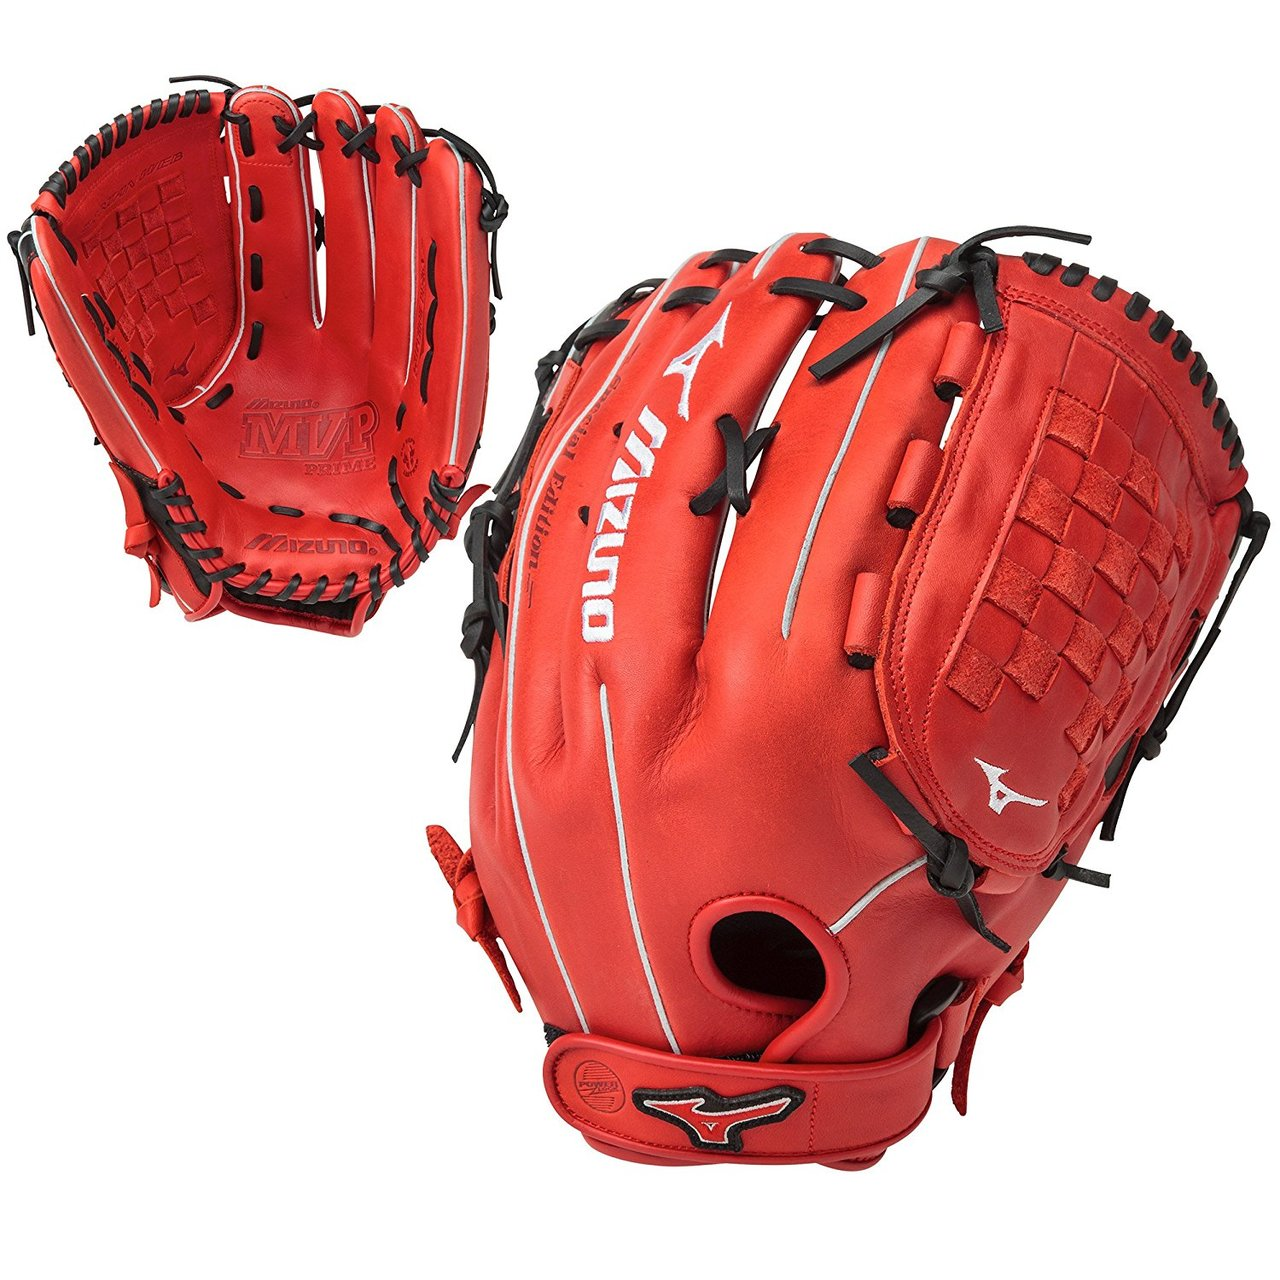 mizuno-mvp-prime-se-14-inch-gmvp1400pses5-slowpitch-glove-red-black-right-hand-throw GMVP1400PSES5-RDBK-RightHandThrow Mizuno 889961060144 The Special Edition MVP Prime Slowpitch Series lives up to Mizunos